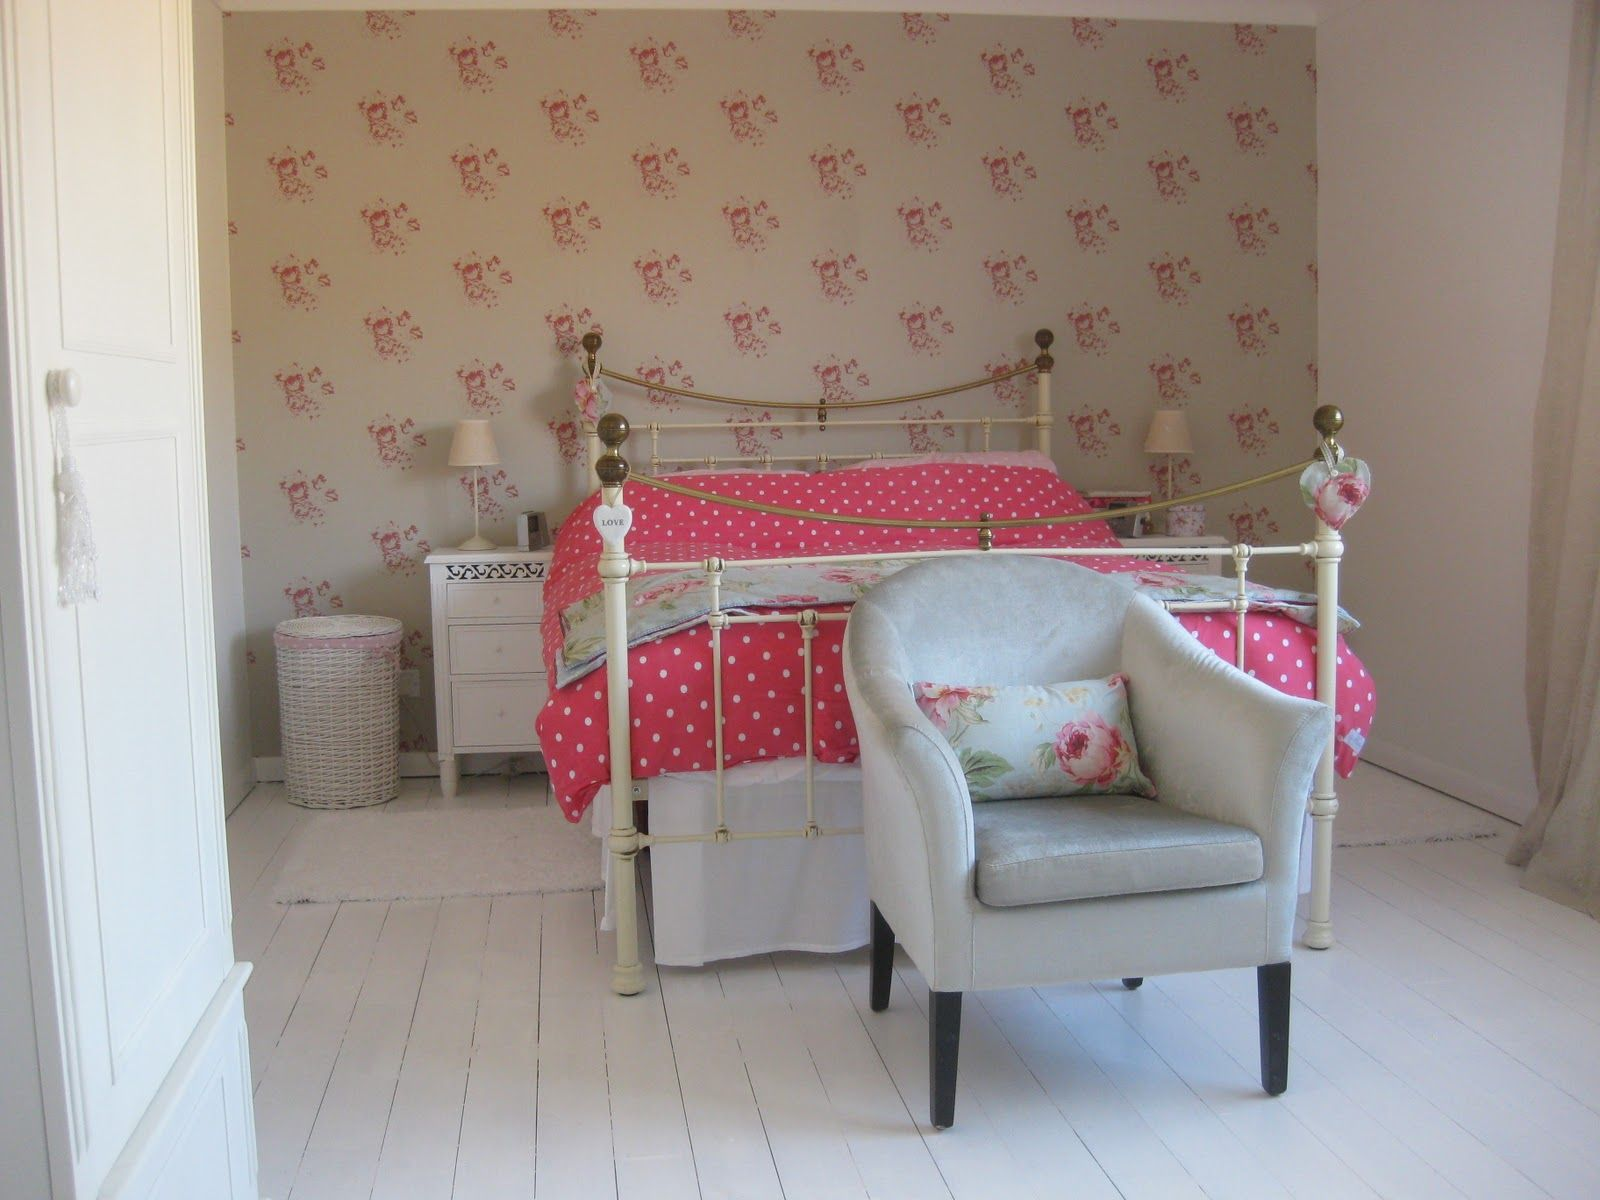 Cath kidston wallpaper bedroom my cath kidston spotty for Cath kidston style bedroom ideas